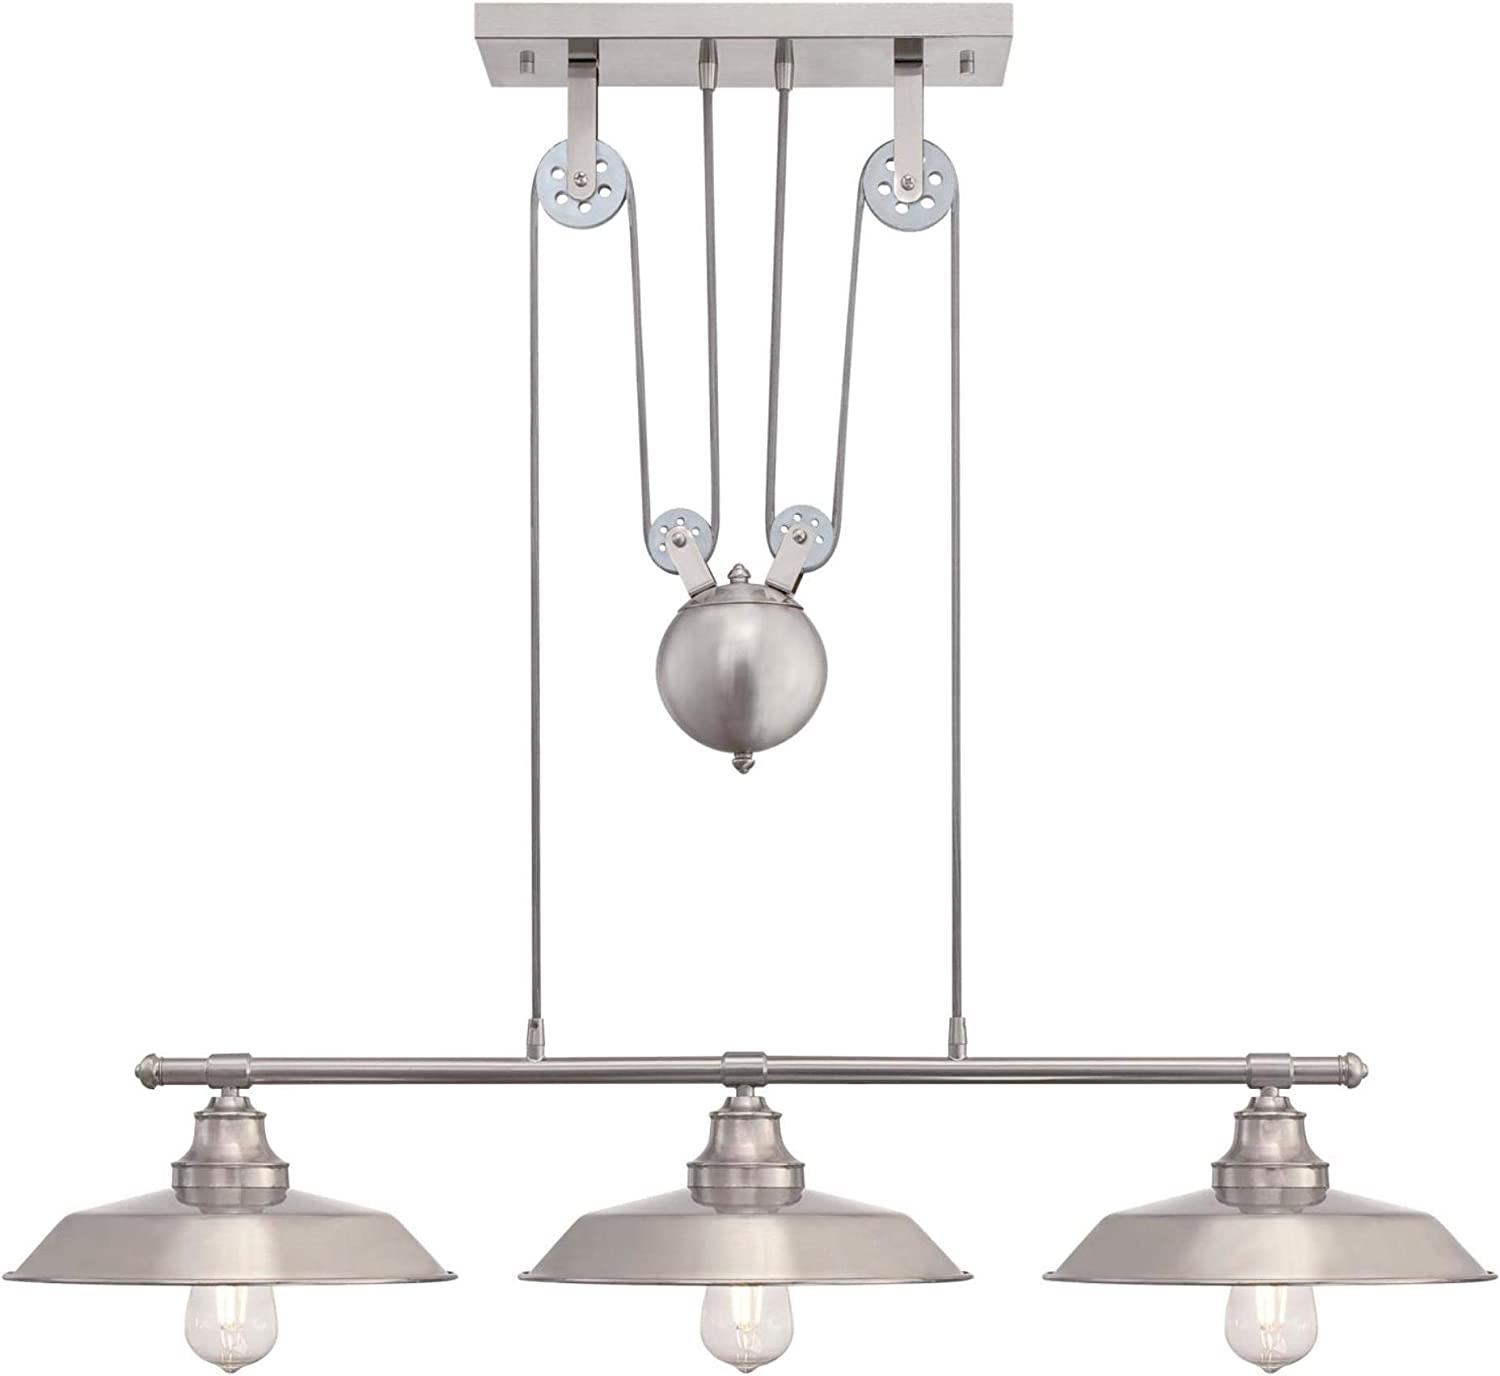 Westinghouse Lighting 6369900 Iron Hill Three-Light Indoor Island Pulley Pendant Light, Brushed Nickel Finish